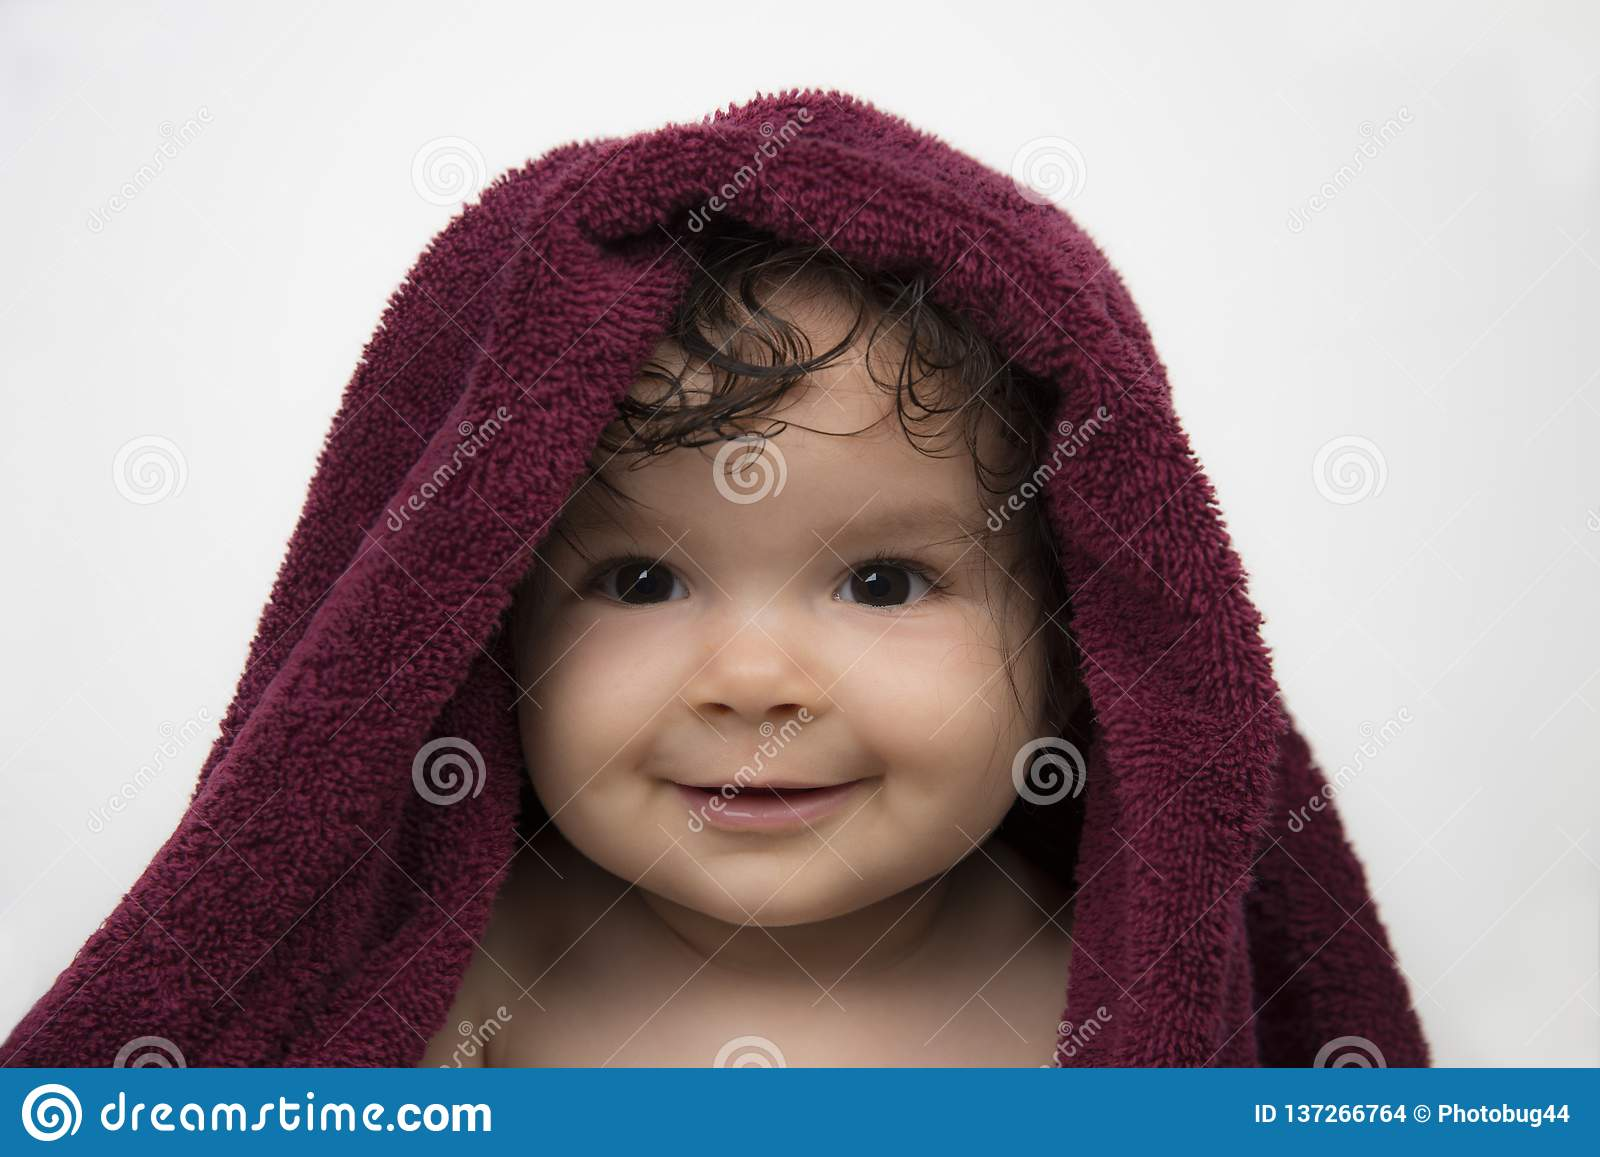 Smiling baby in red bath towel